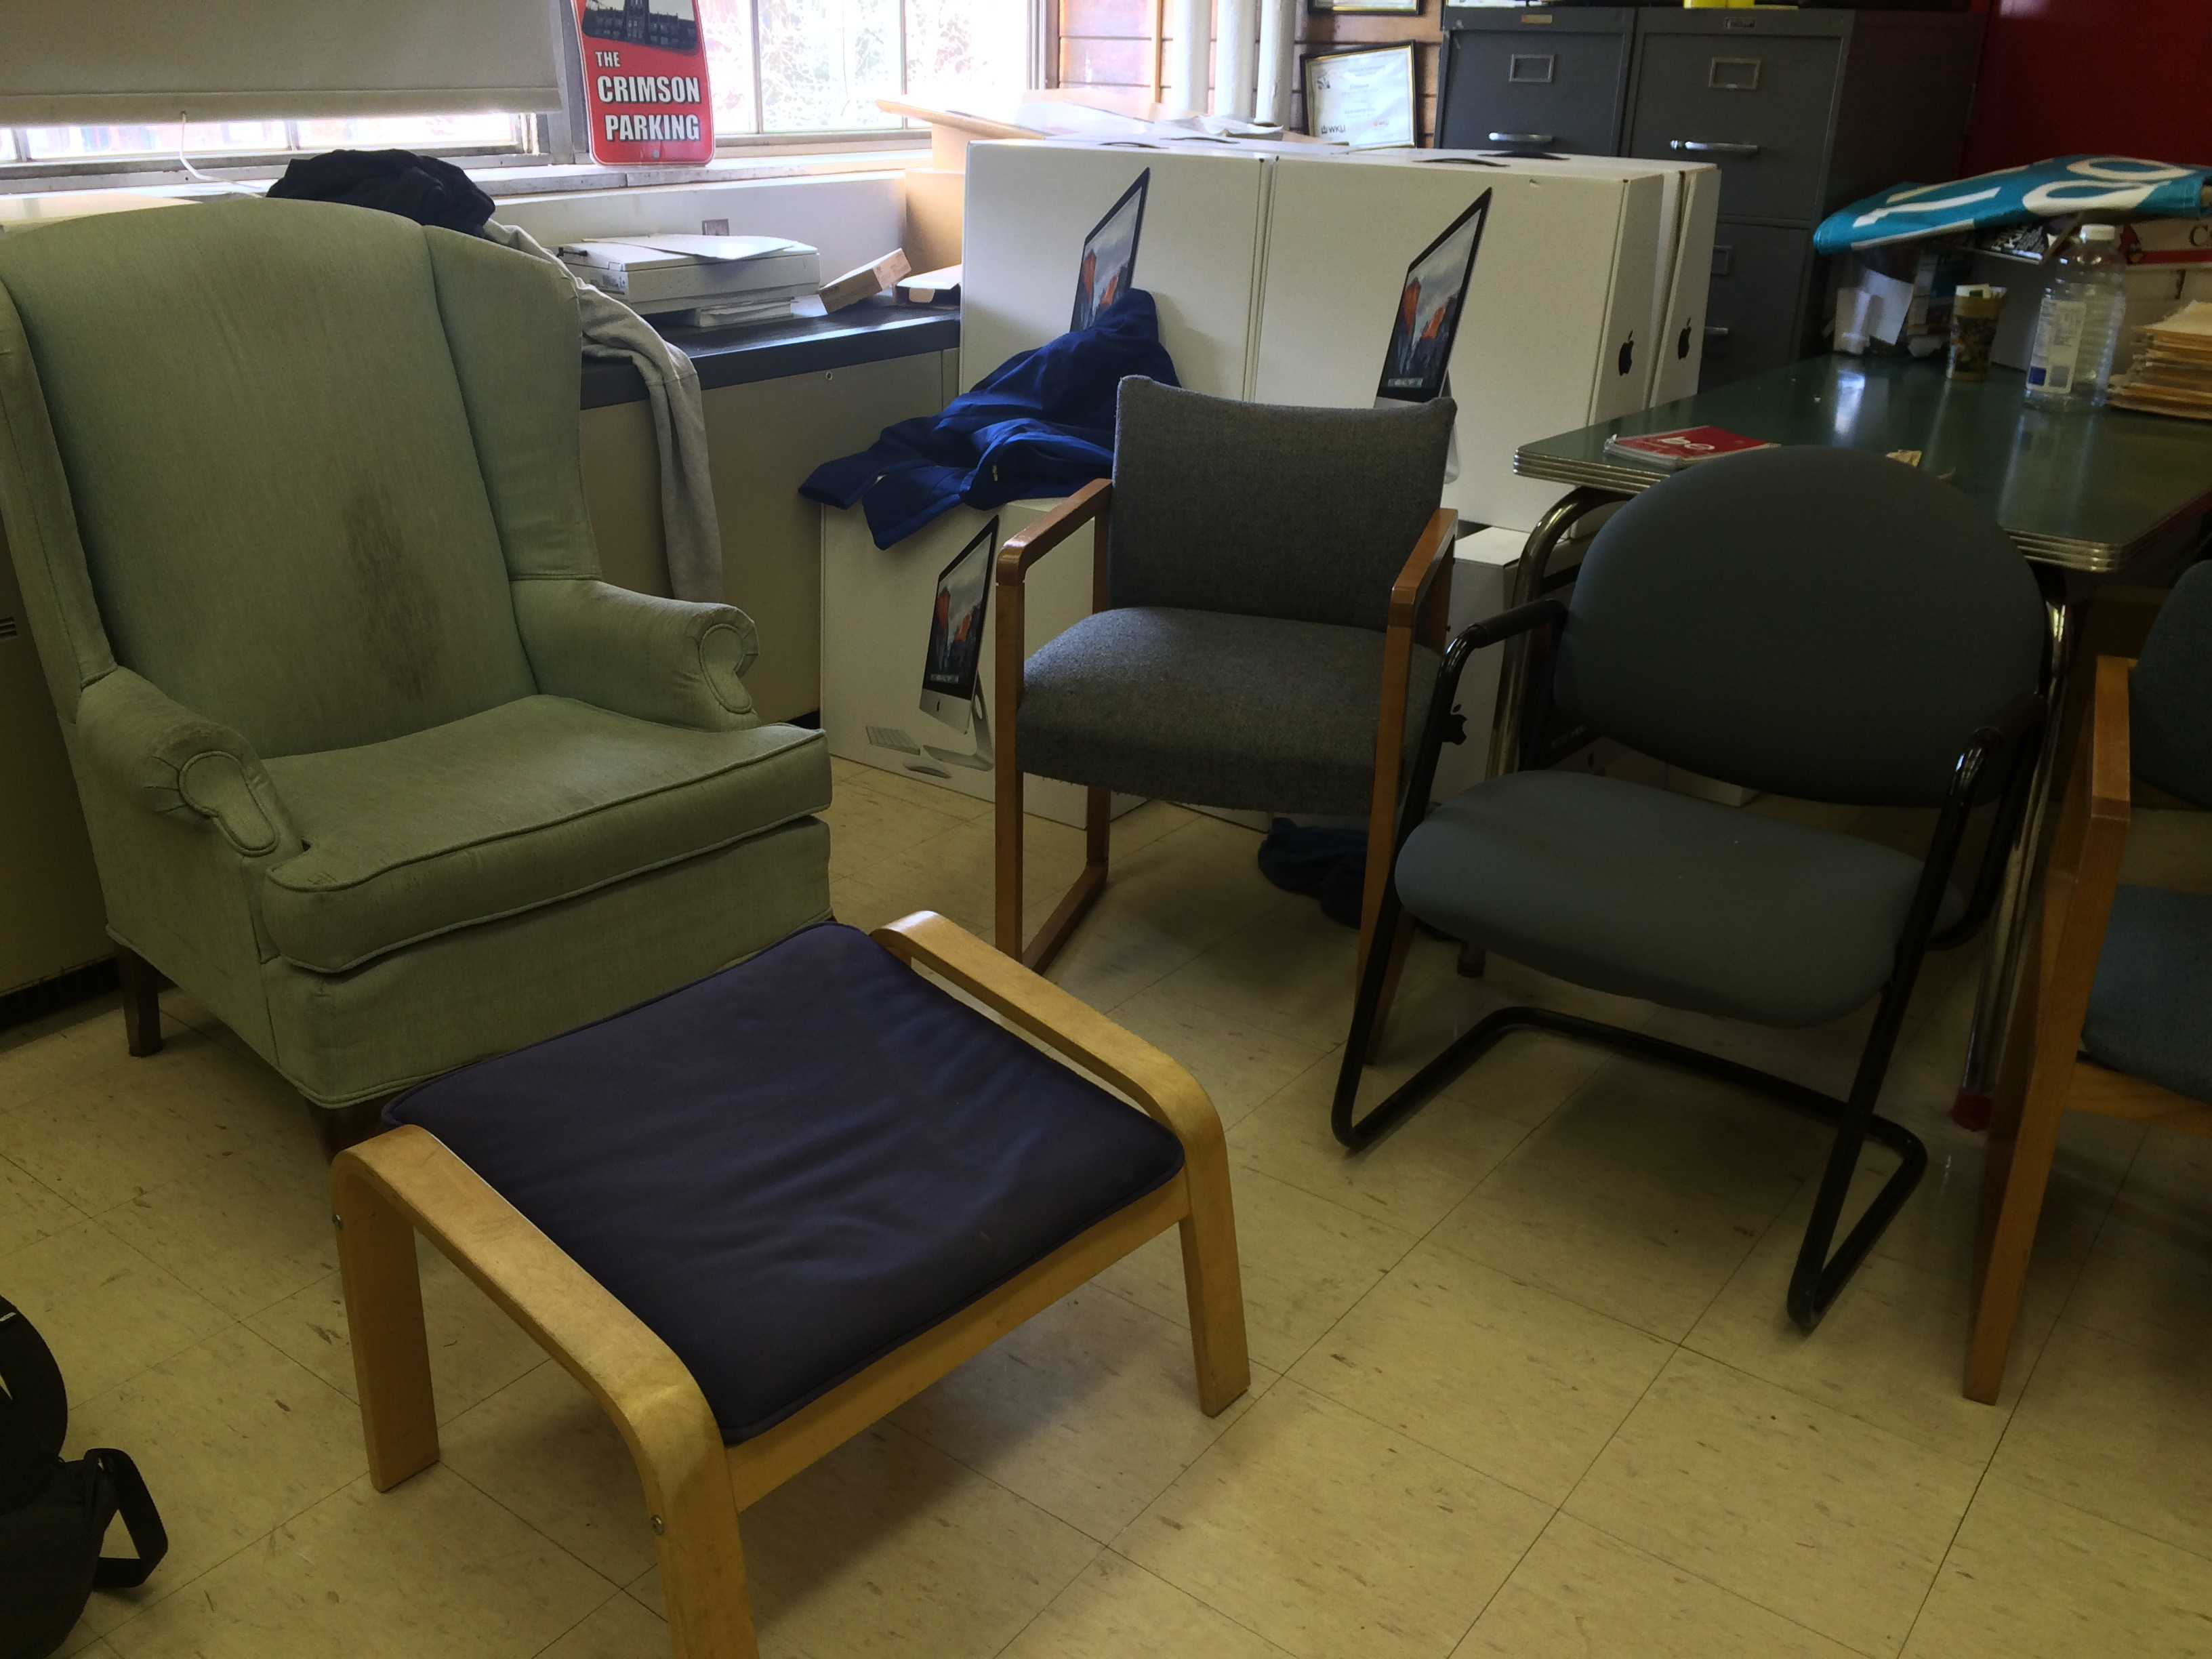 Custodial staff bans couches from classrooms